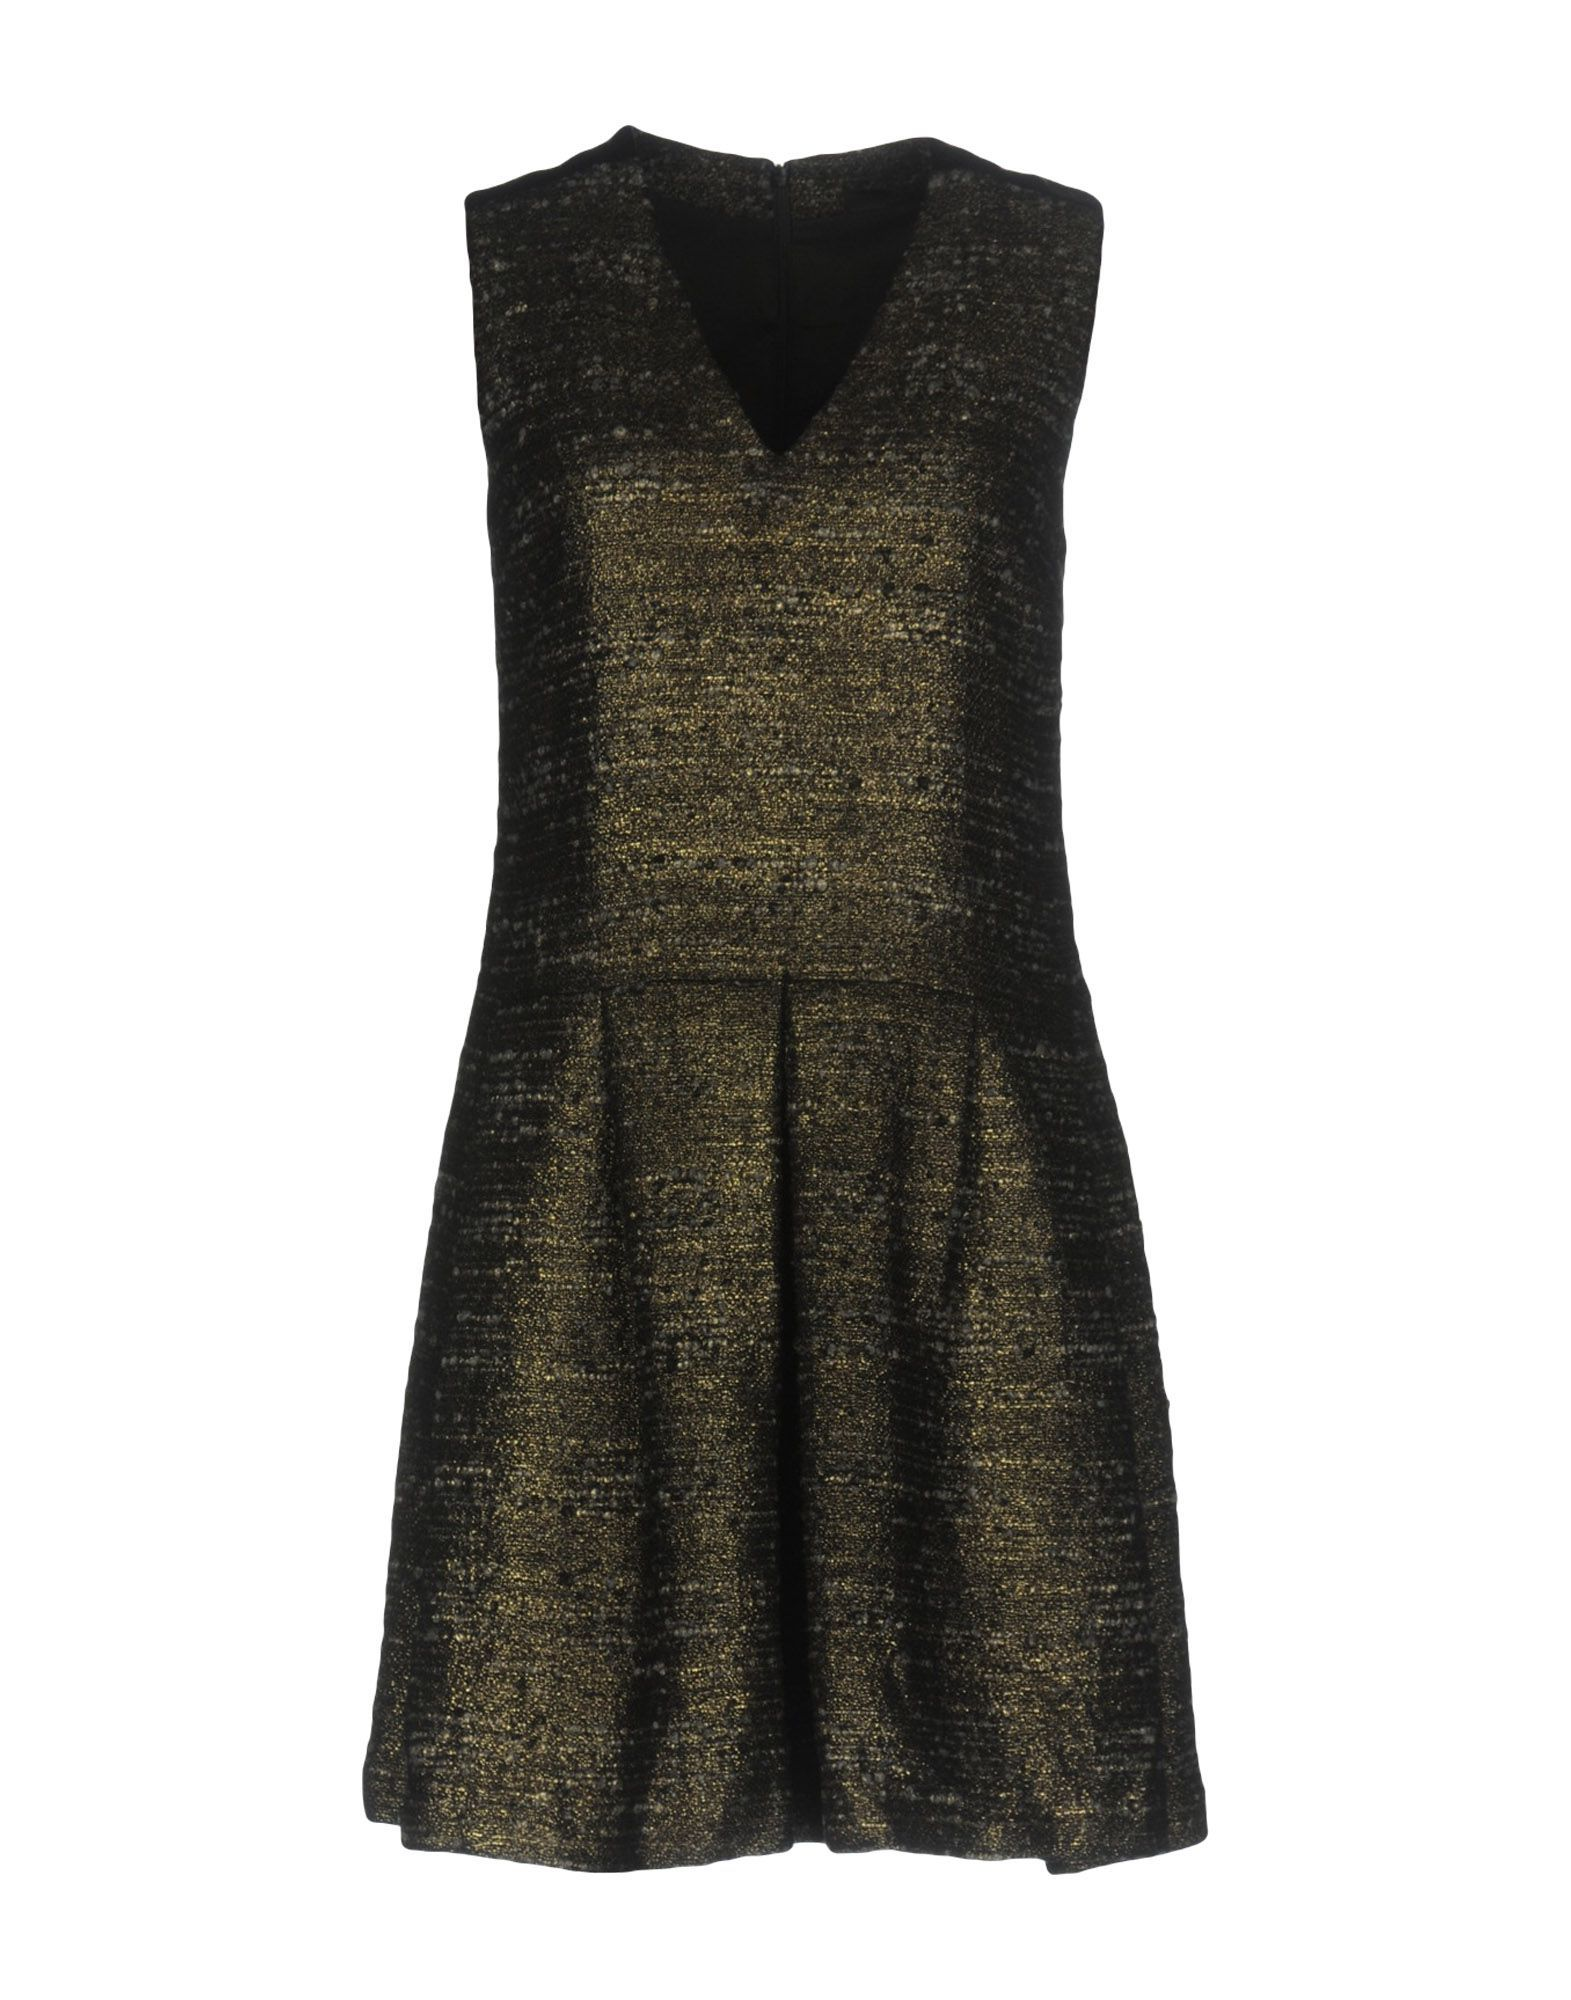 Karl Lagerfeld Gold Faux Leather Short Dress